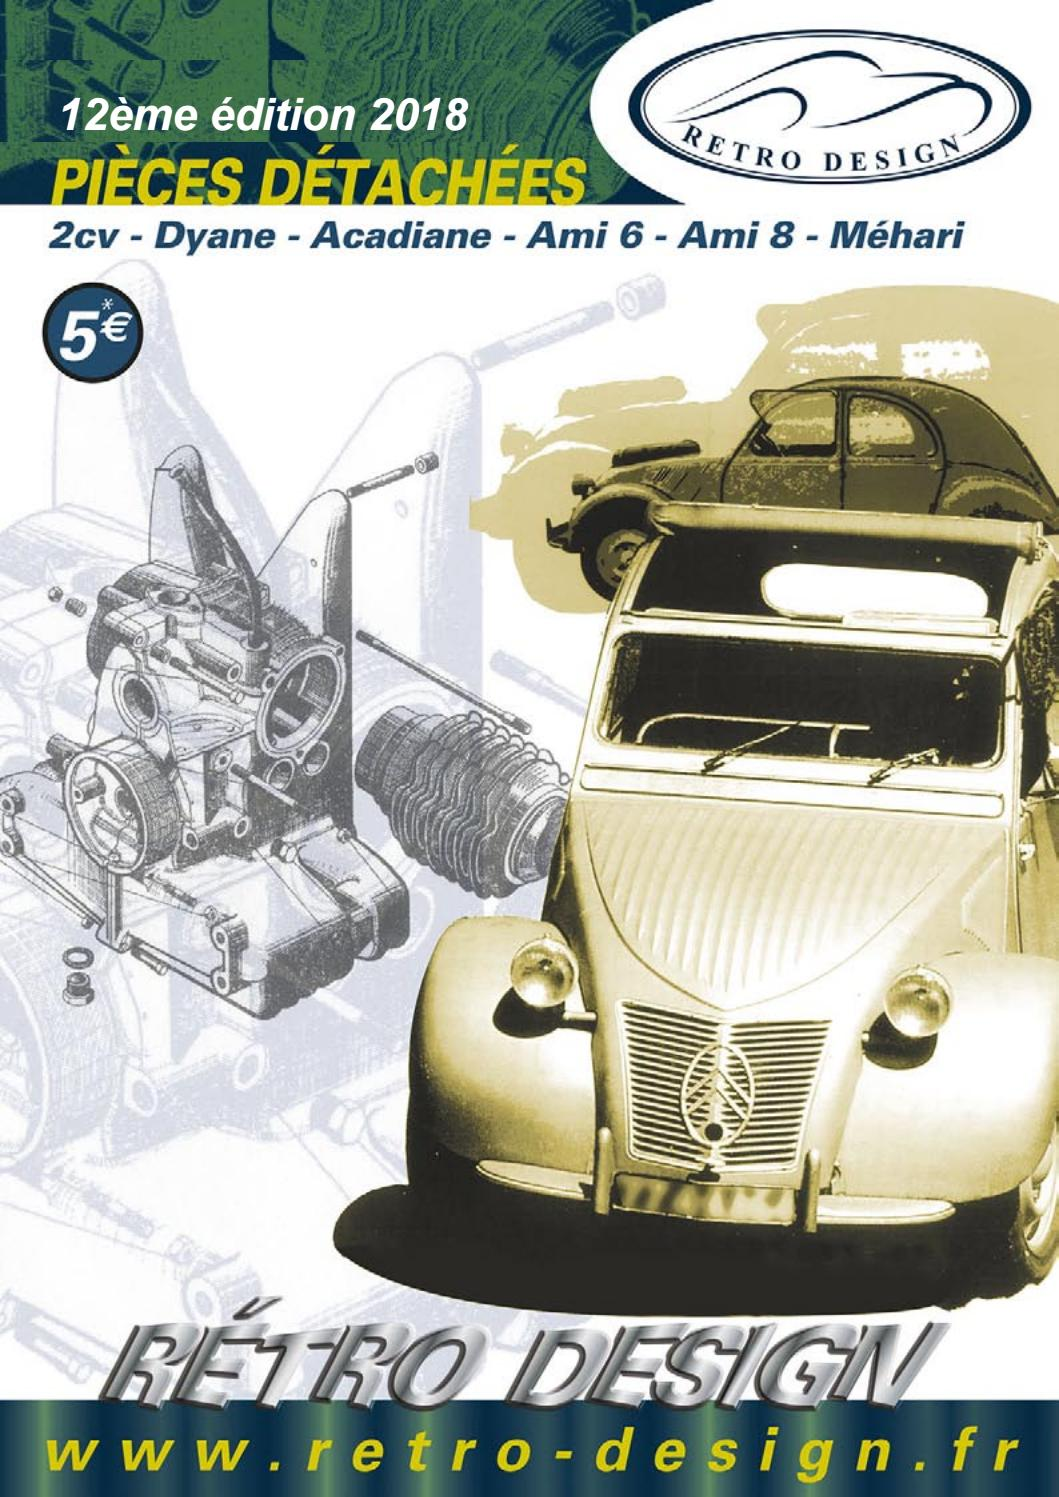 catalogue of 2cv and derivates spare parts by retro design